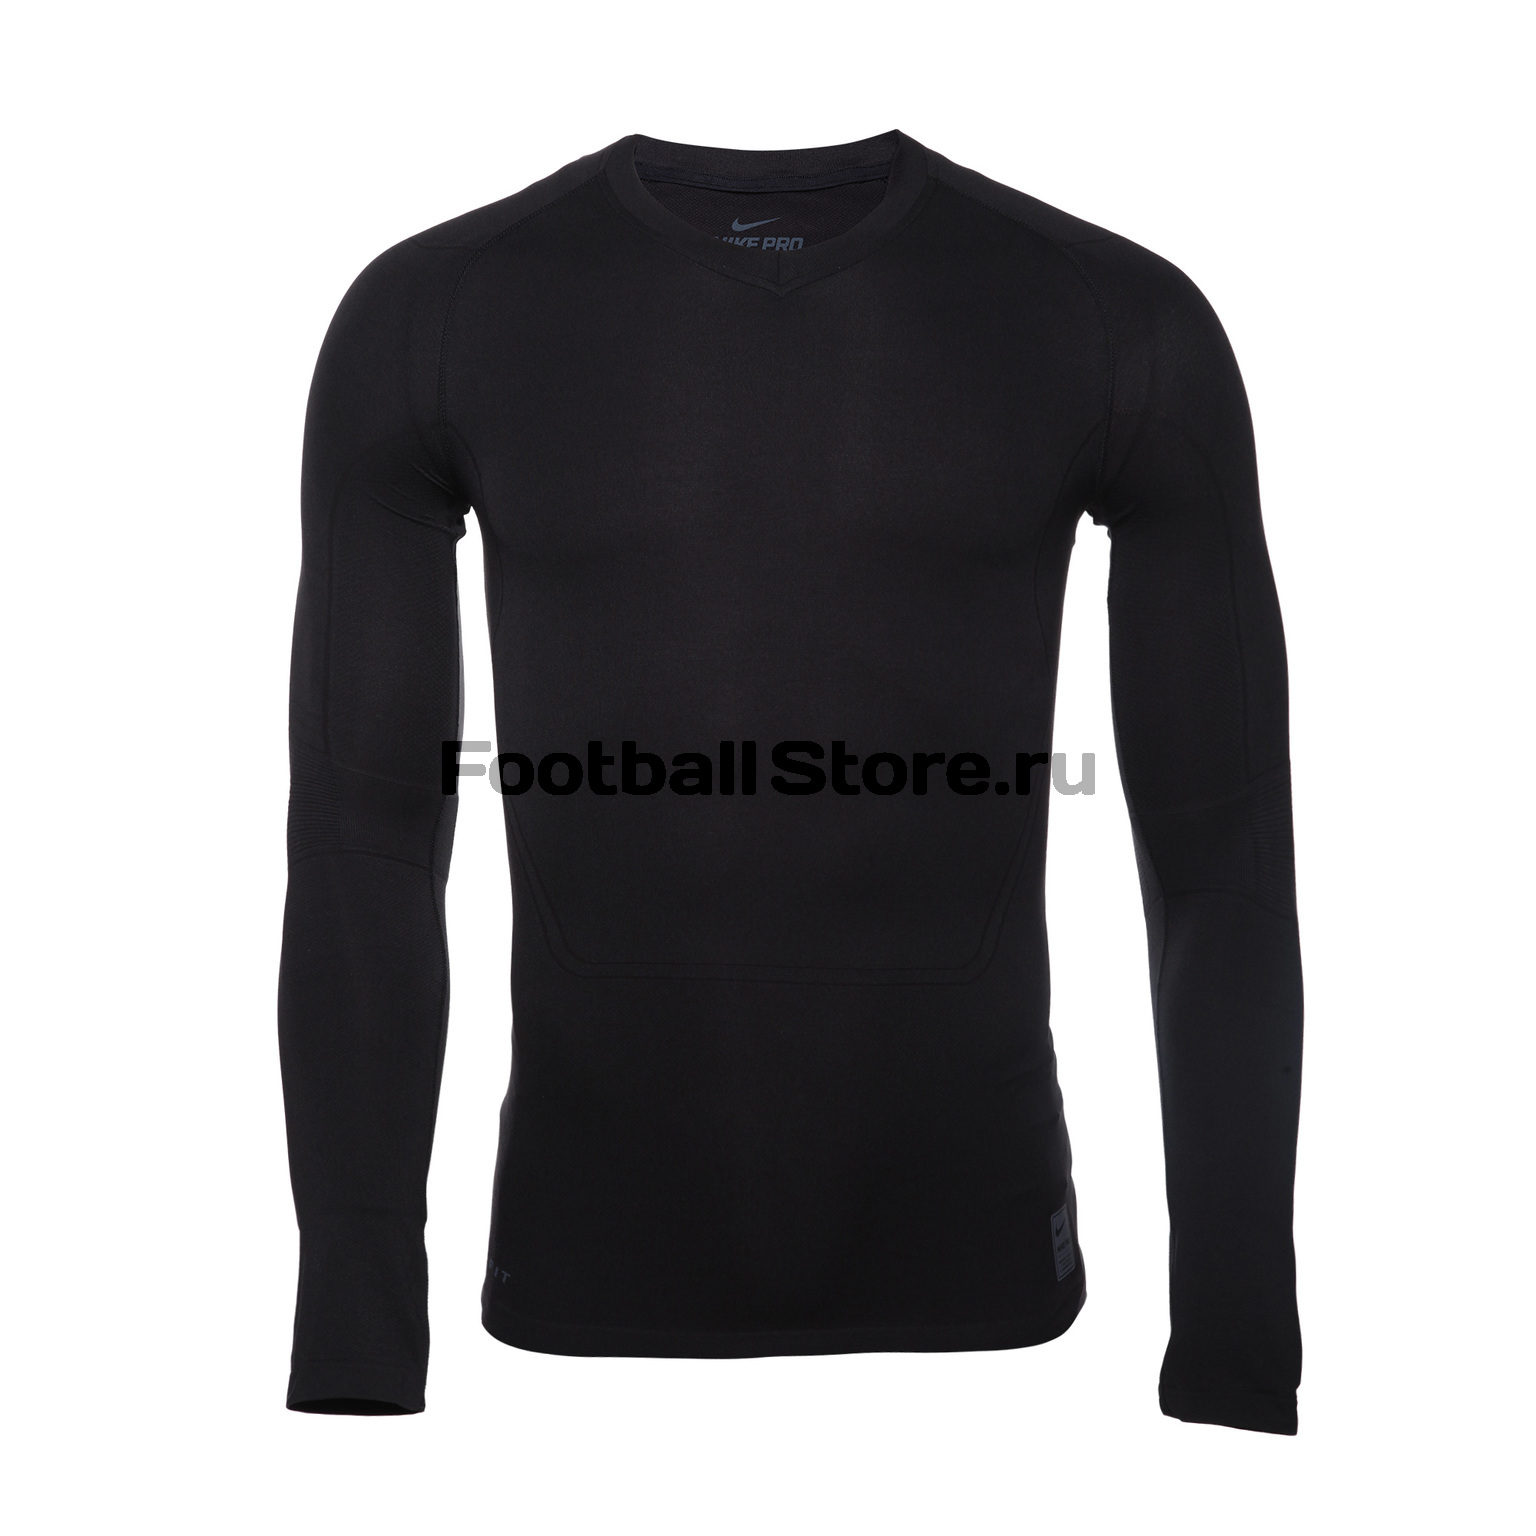 Белье футболка Nike LHTWT LS TOP 824618-010 футболка nike drill football top 807245 010 черный 164